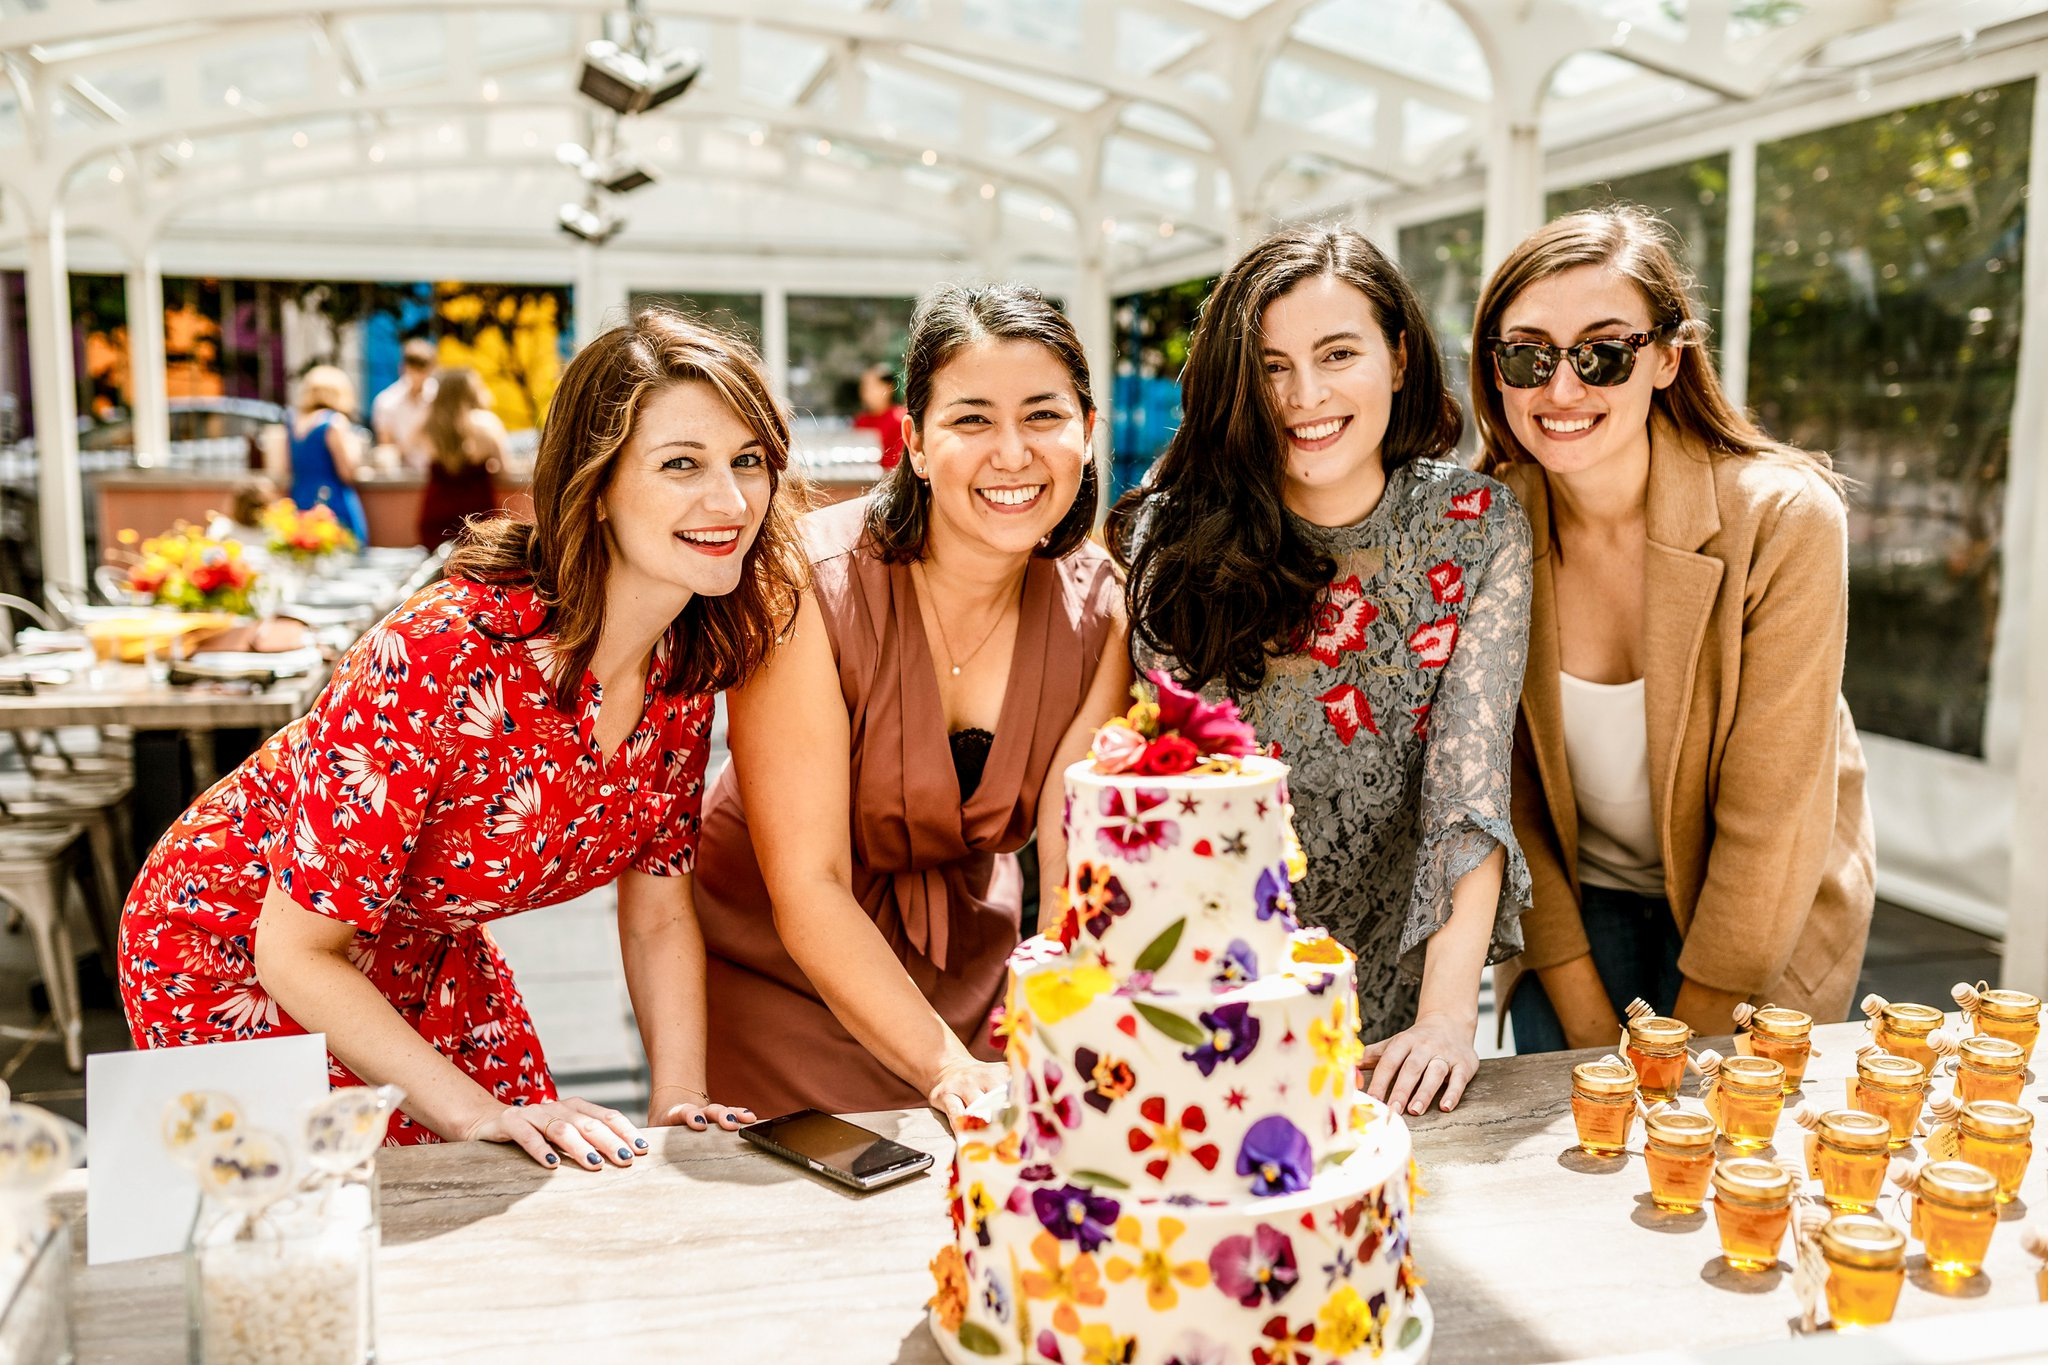 The easiest and most affordable way to book a great party photographer  Sample